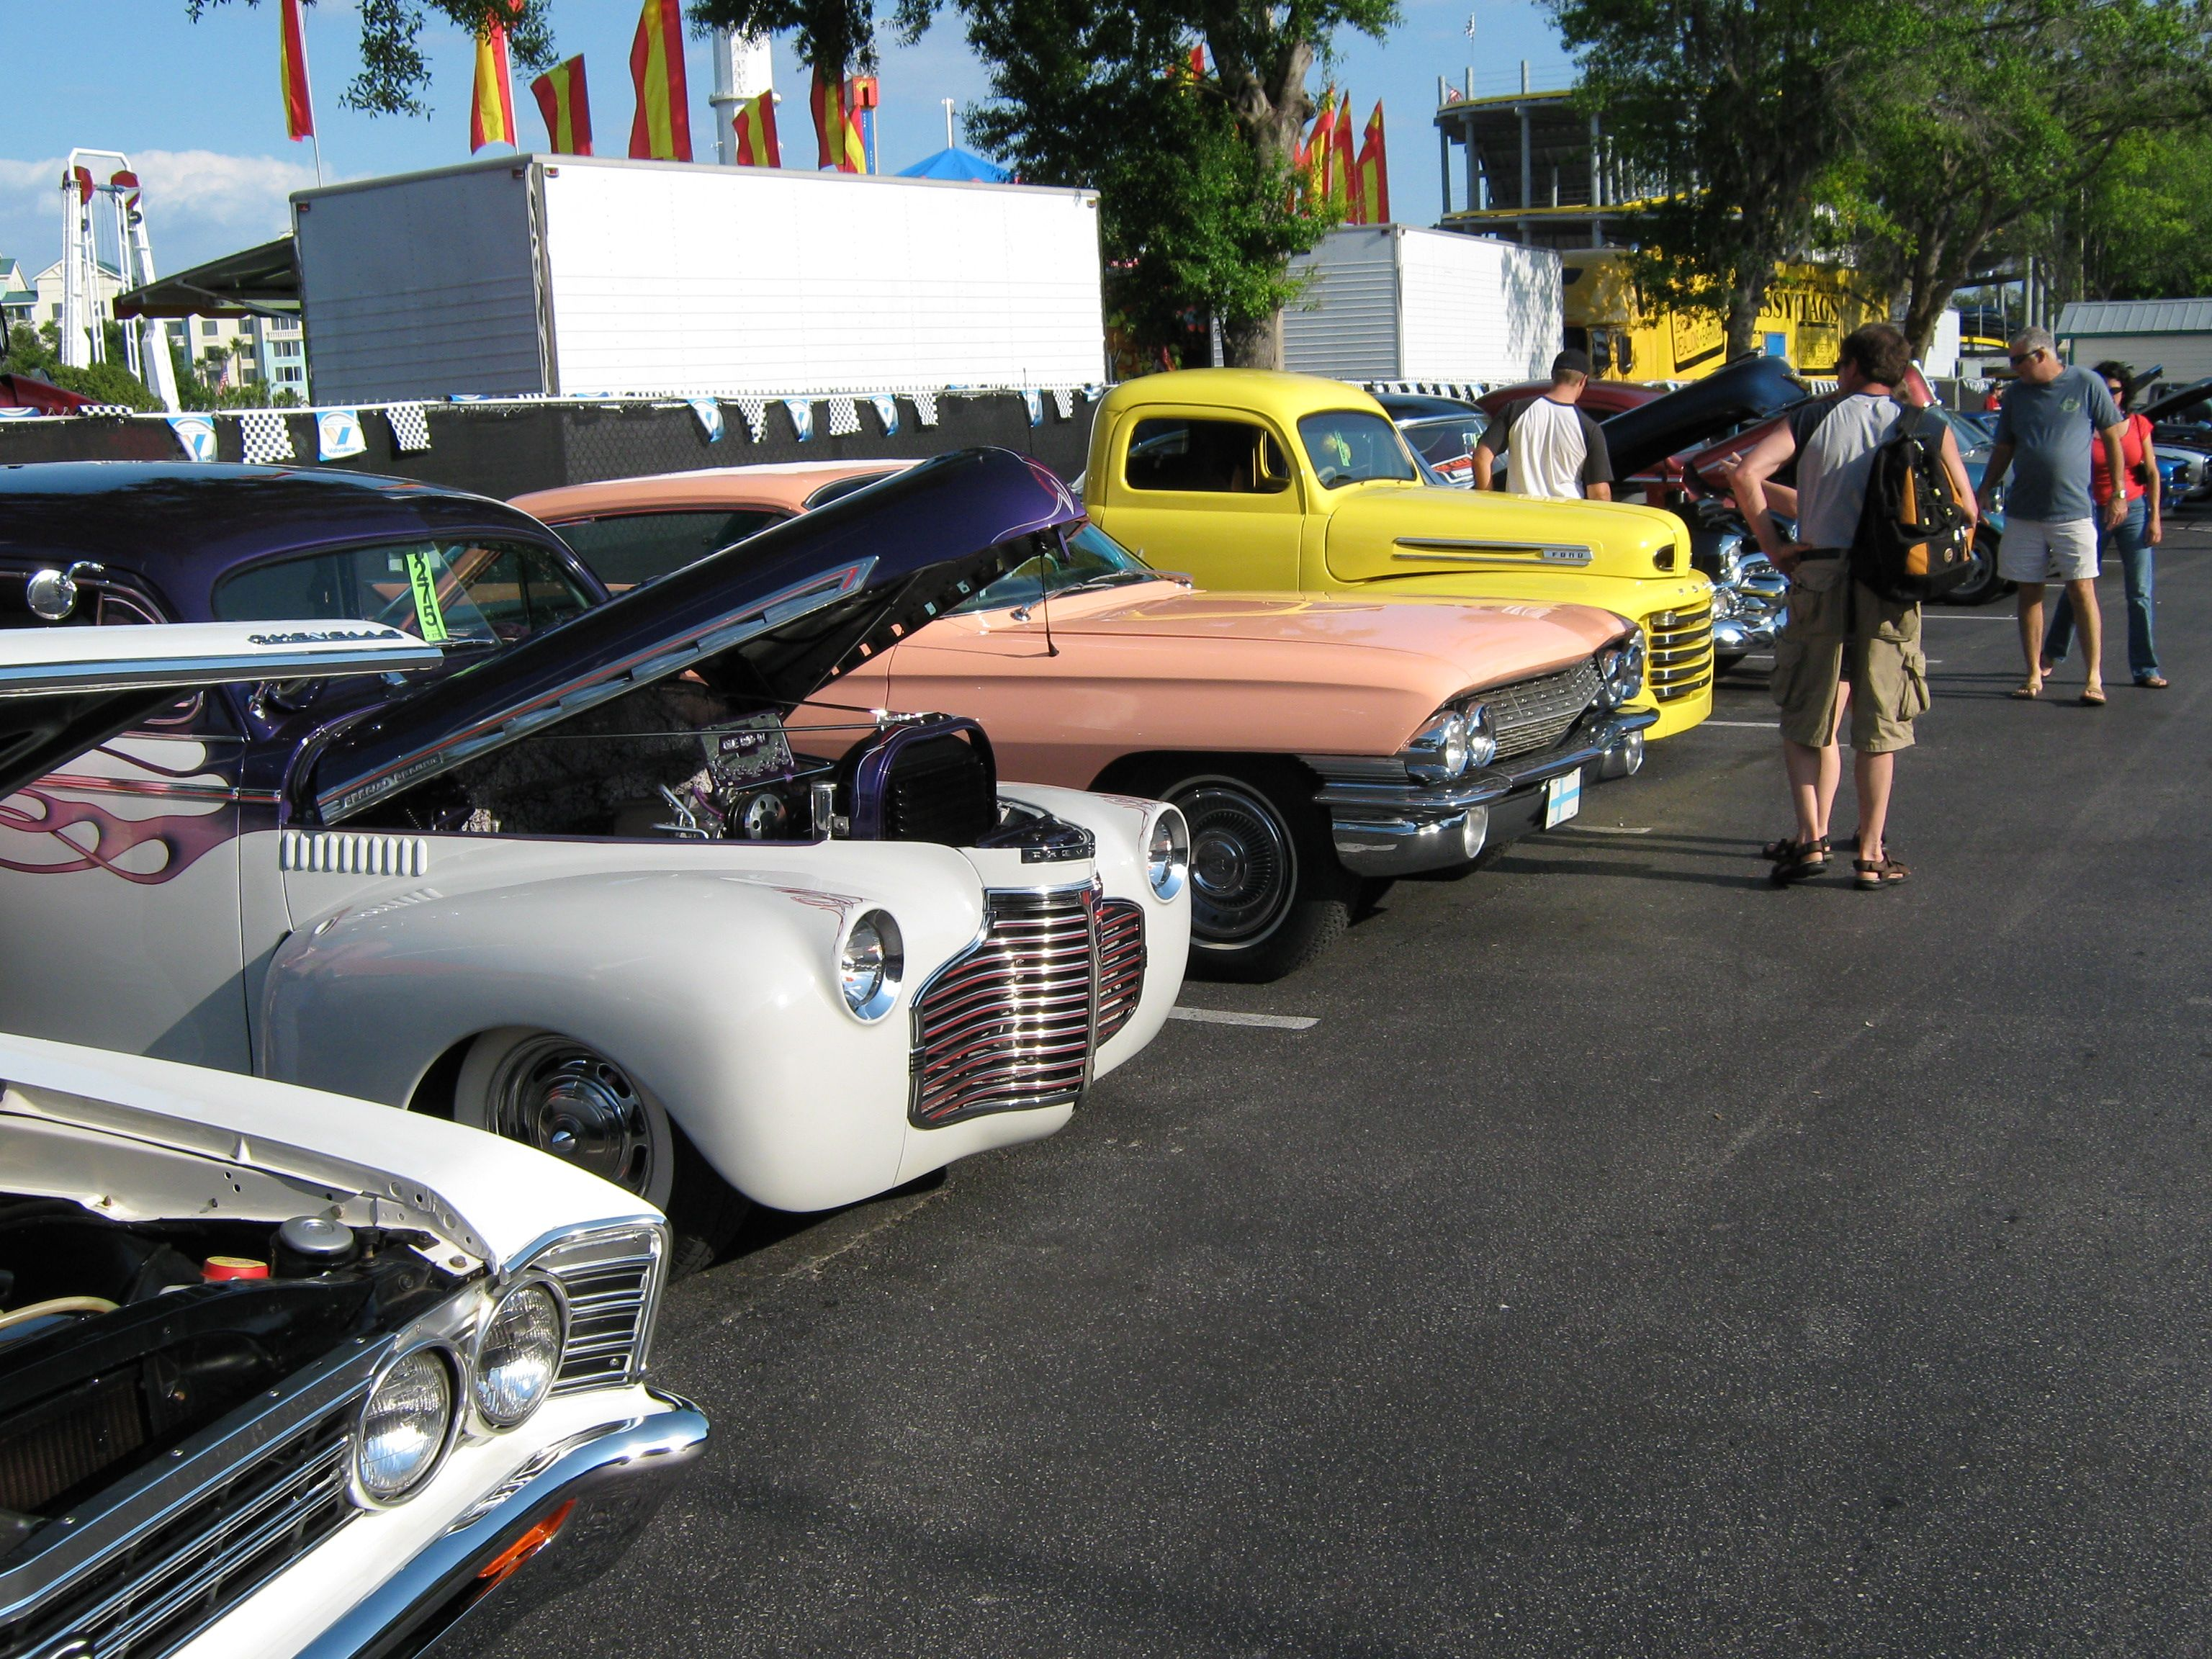 A Row Of Cars At The Old Town Saturday Night Cruise Car Show In - Kissimmee car show saturday